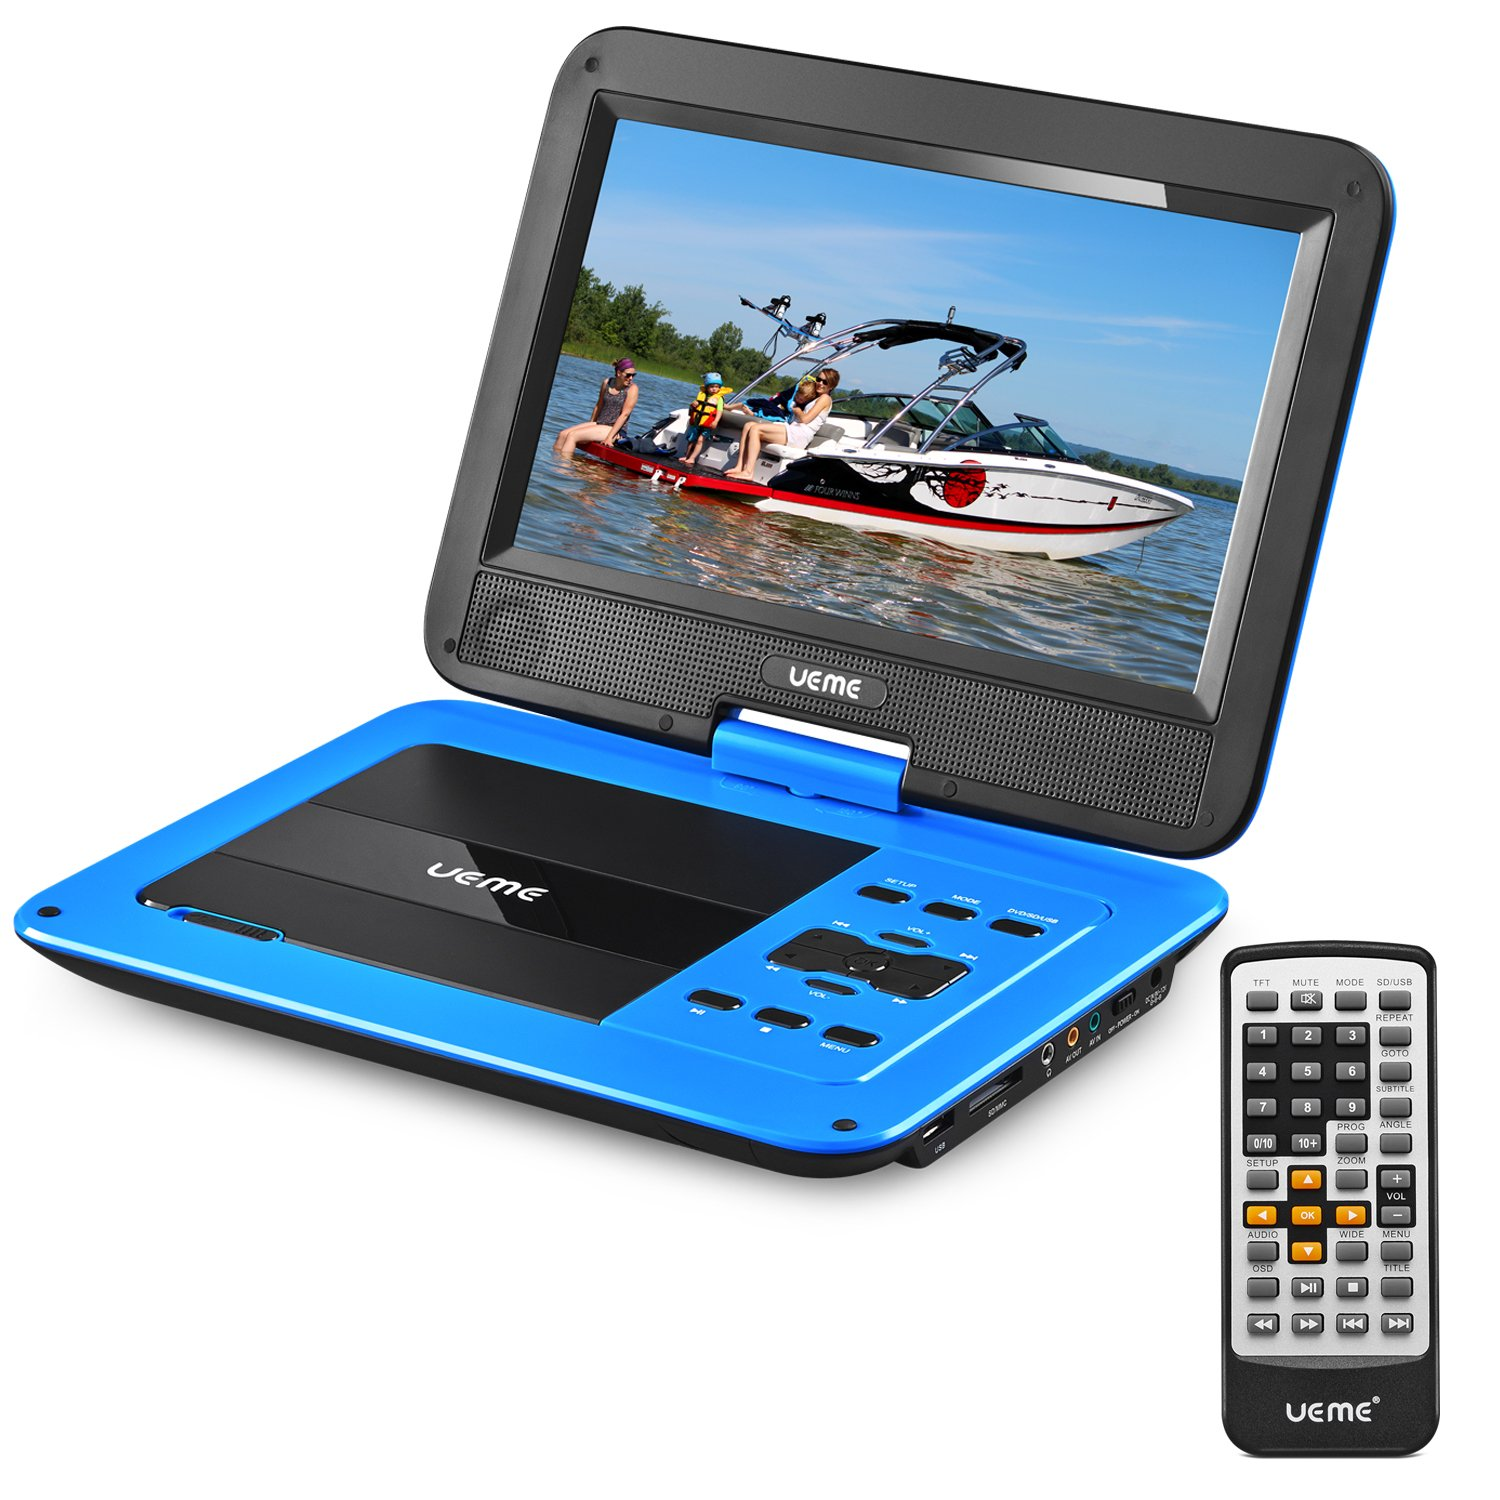 UEME Portable DVD CD Player with 10.1 Inches Swivel Screen, HD TFT LCD, Car Headrest Mount Holder, Remote Control, Personal DVD Player with Built-in Rechargeable Battery (Blue)